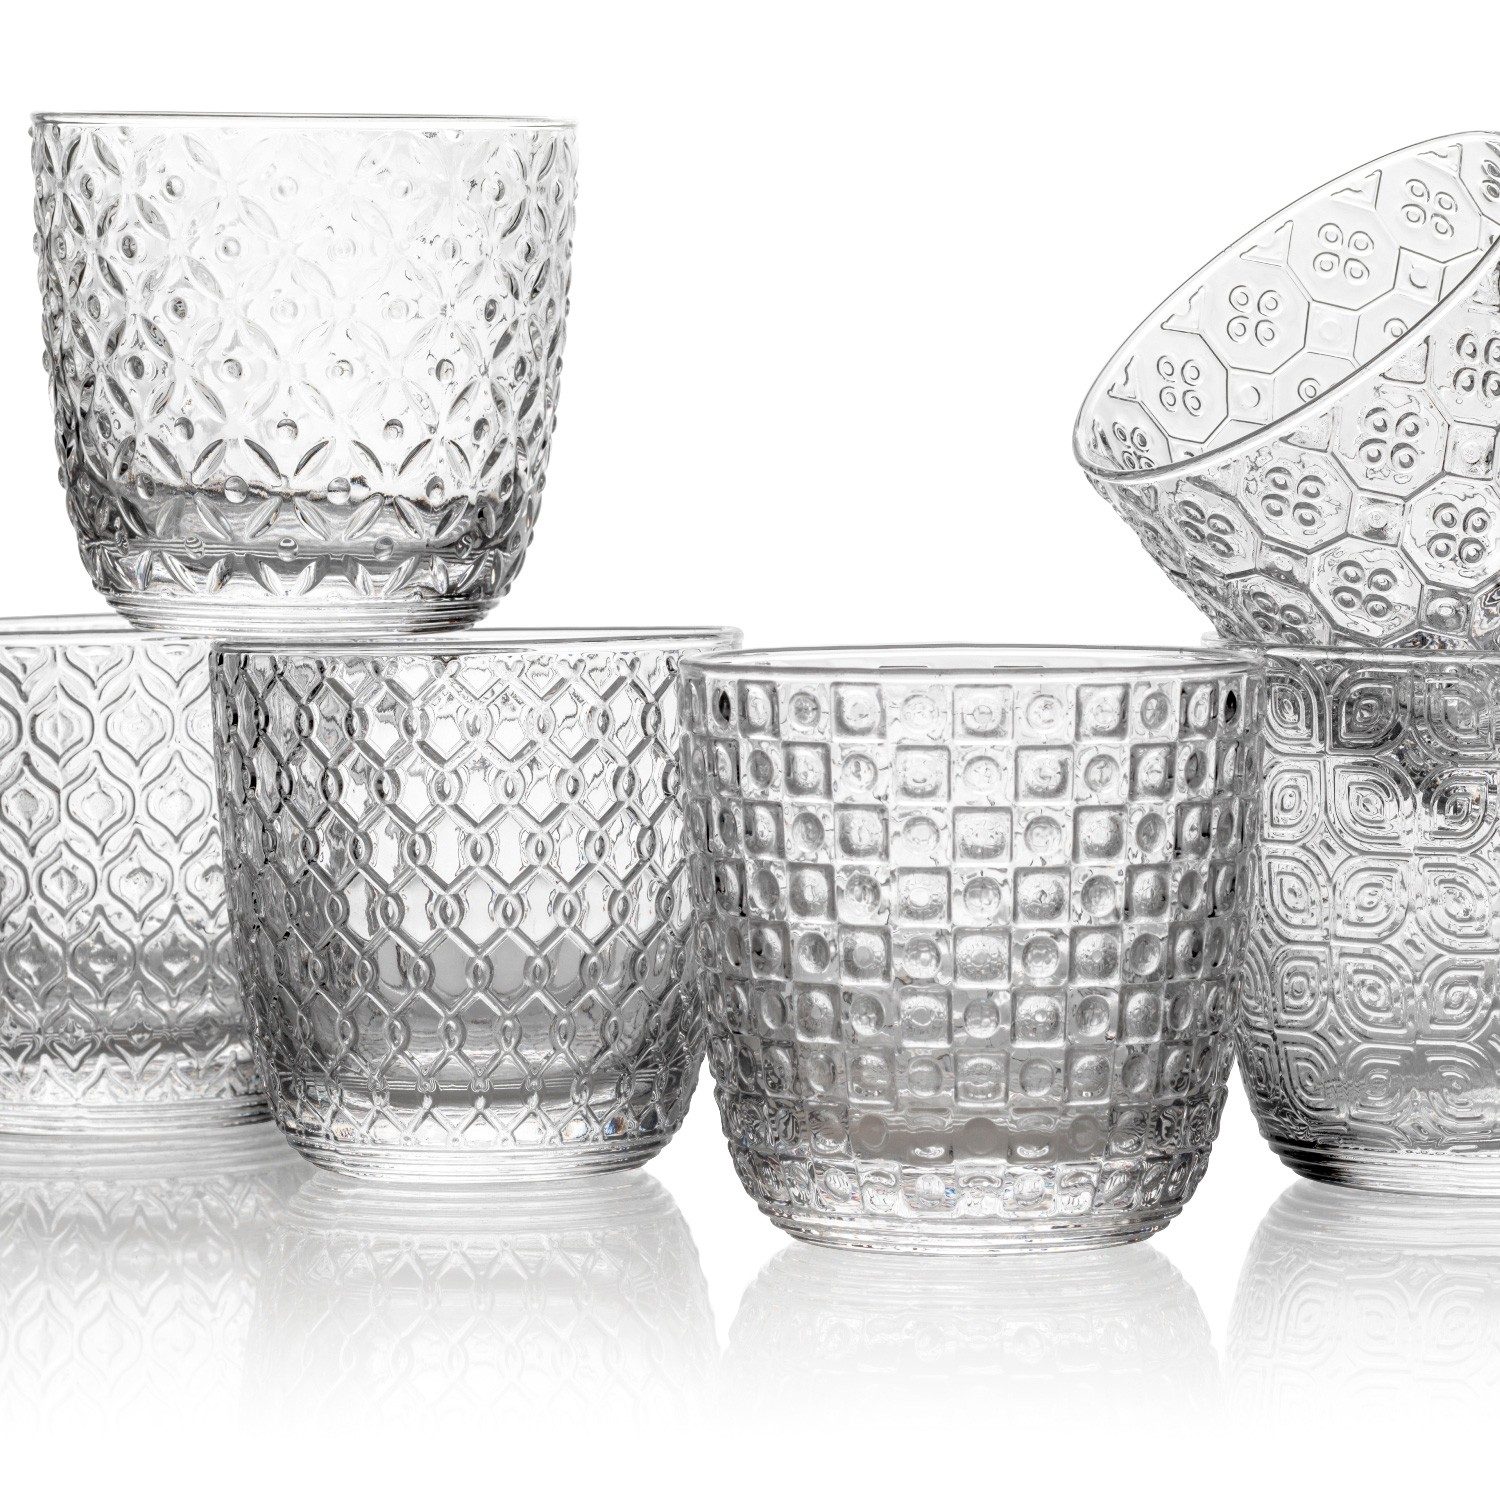 IVV Sixties 6 Piece Glass Tumbler Set, Clear